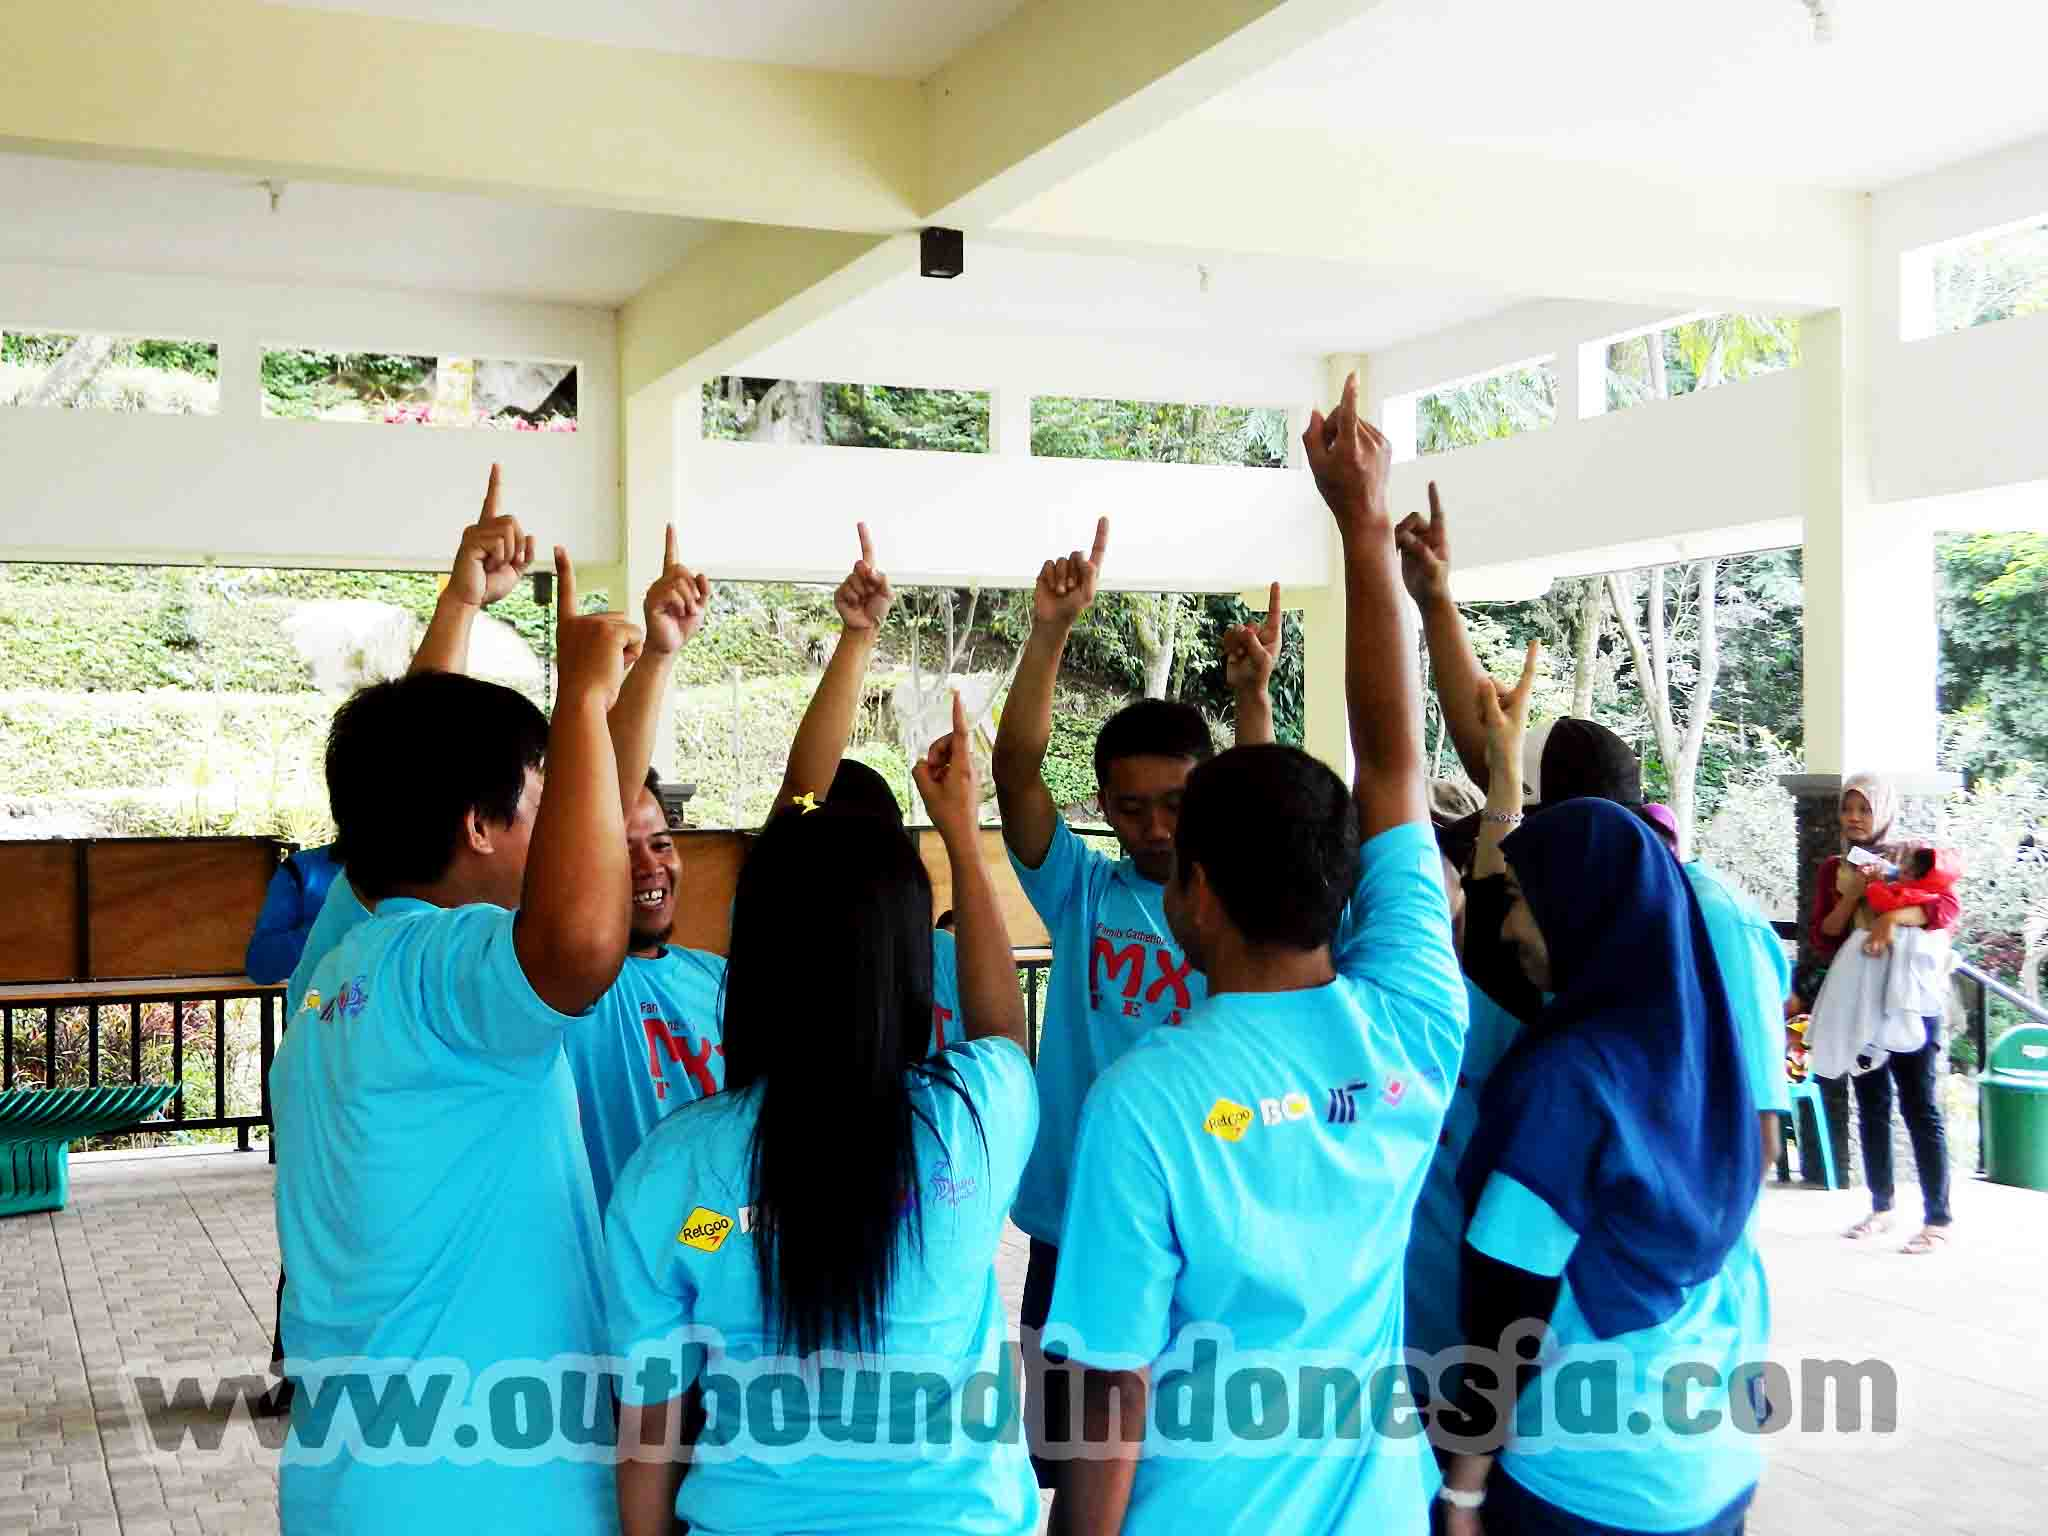 family gathering, www.outboundindonesia.com, 0341 5425754